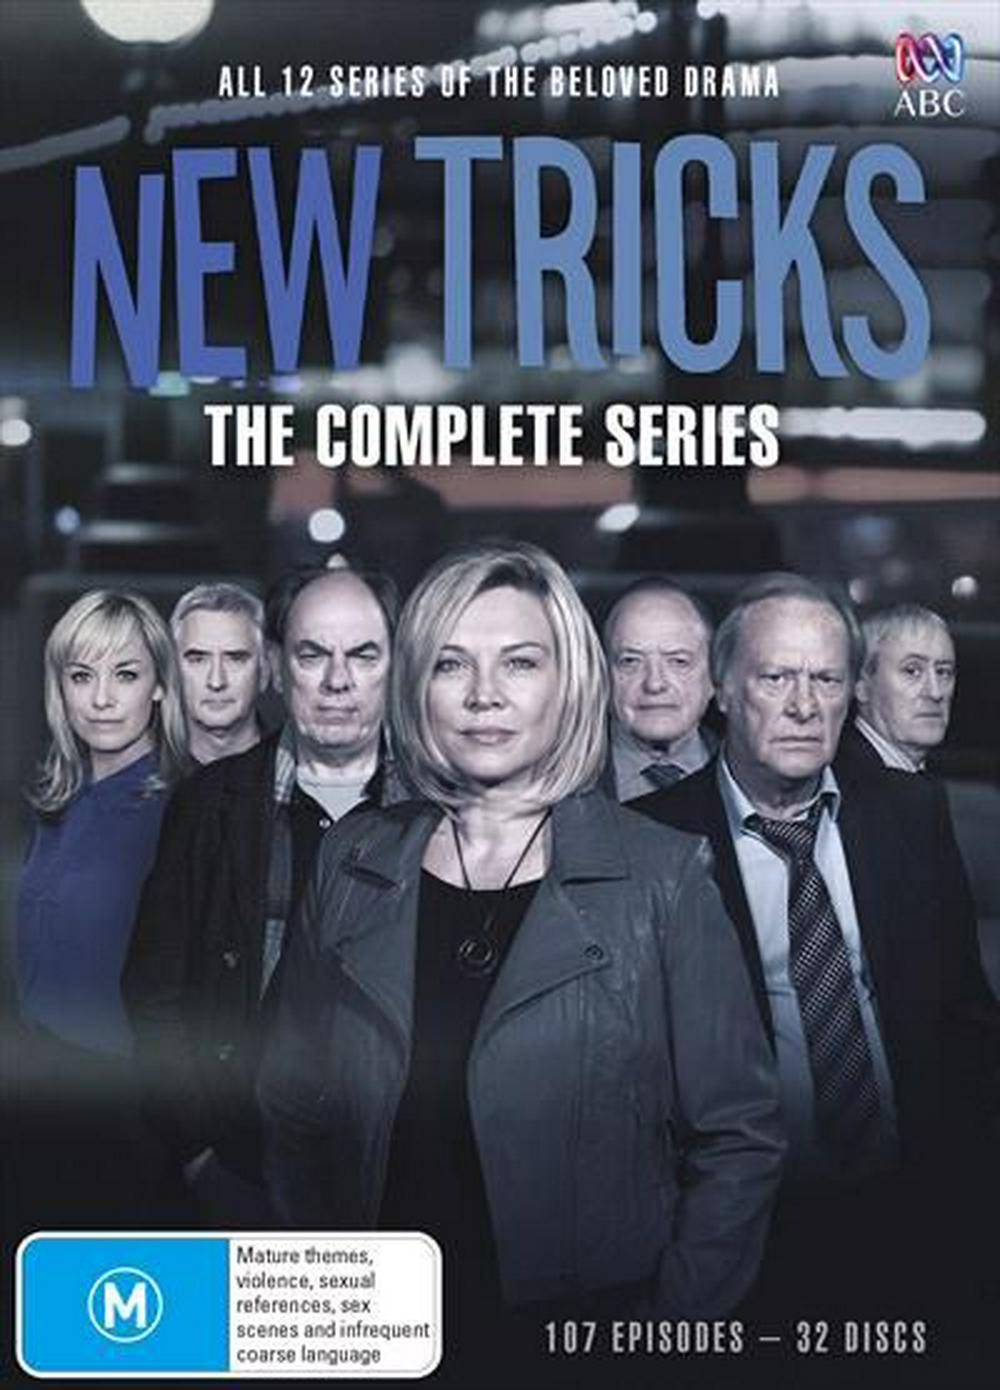 New Tricks Season 3 Full Episodes 123movies